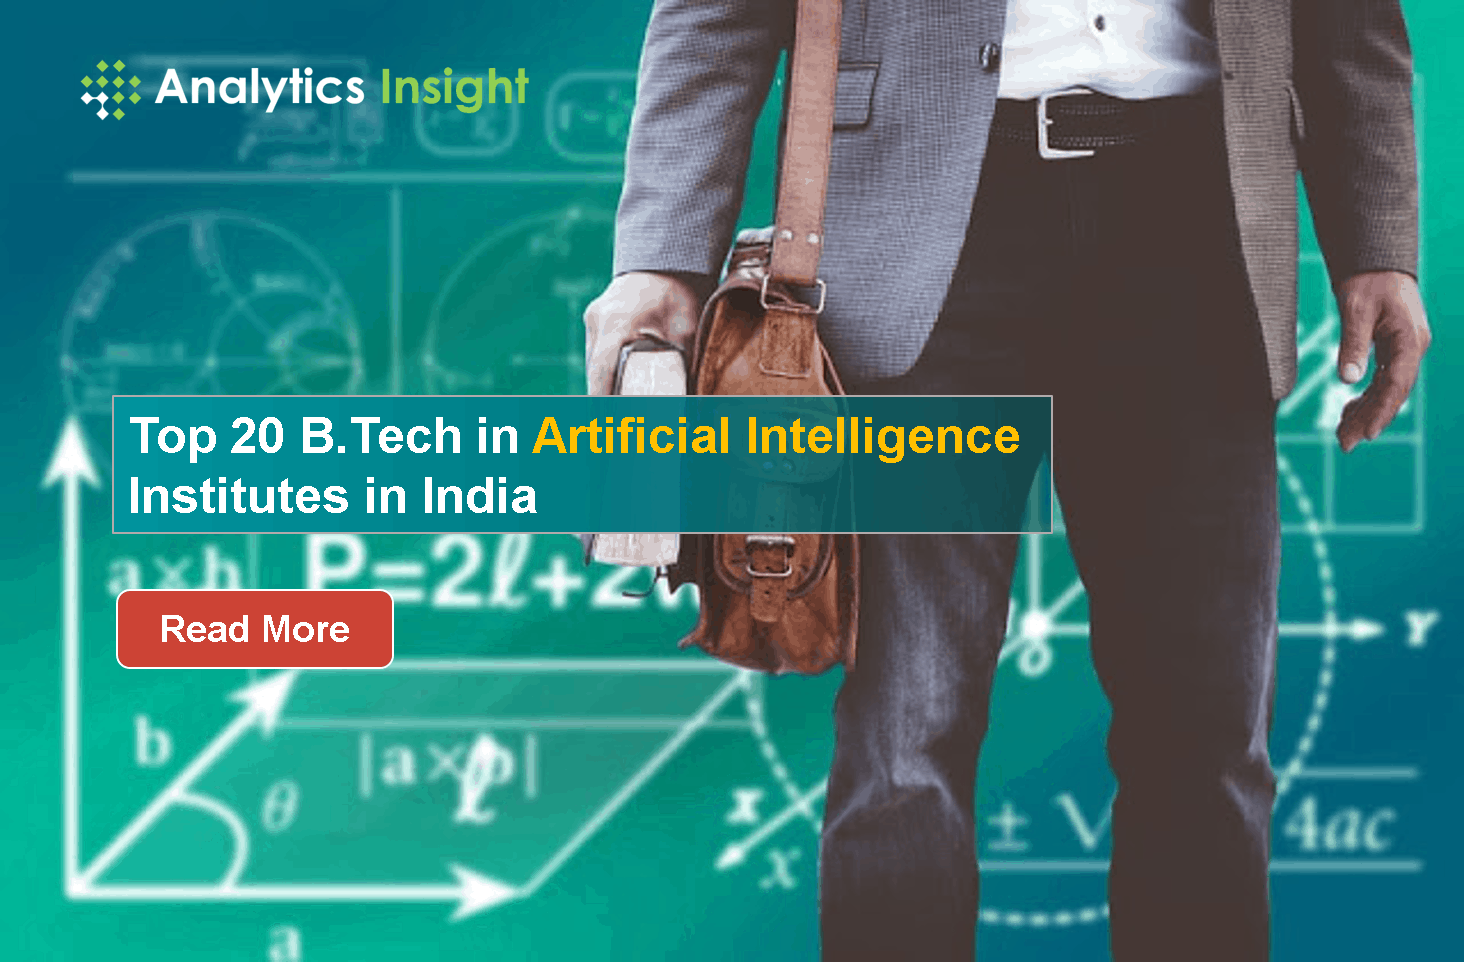 Top 20 B.Tech in Artificial Intelligence Institutes